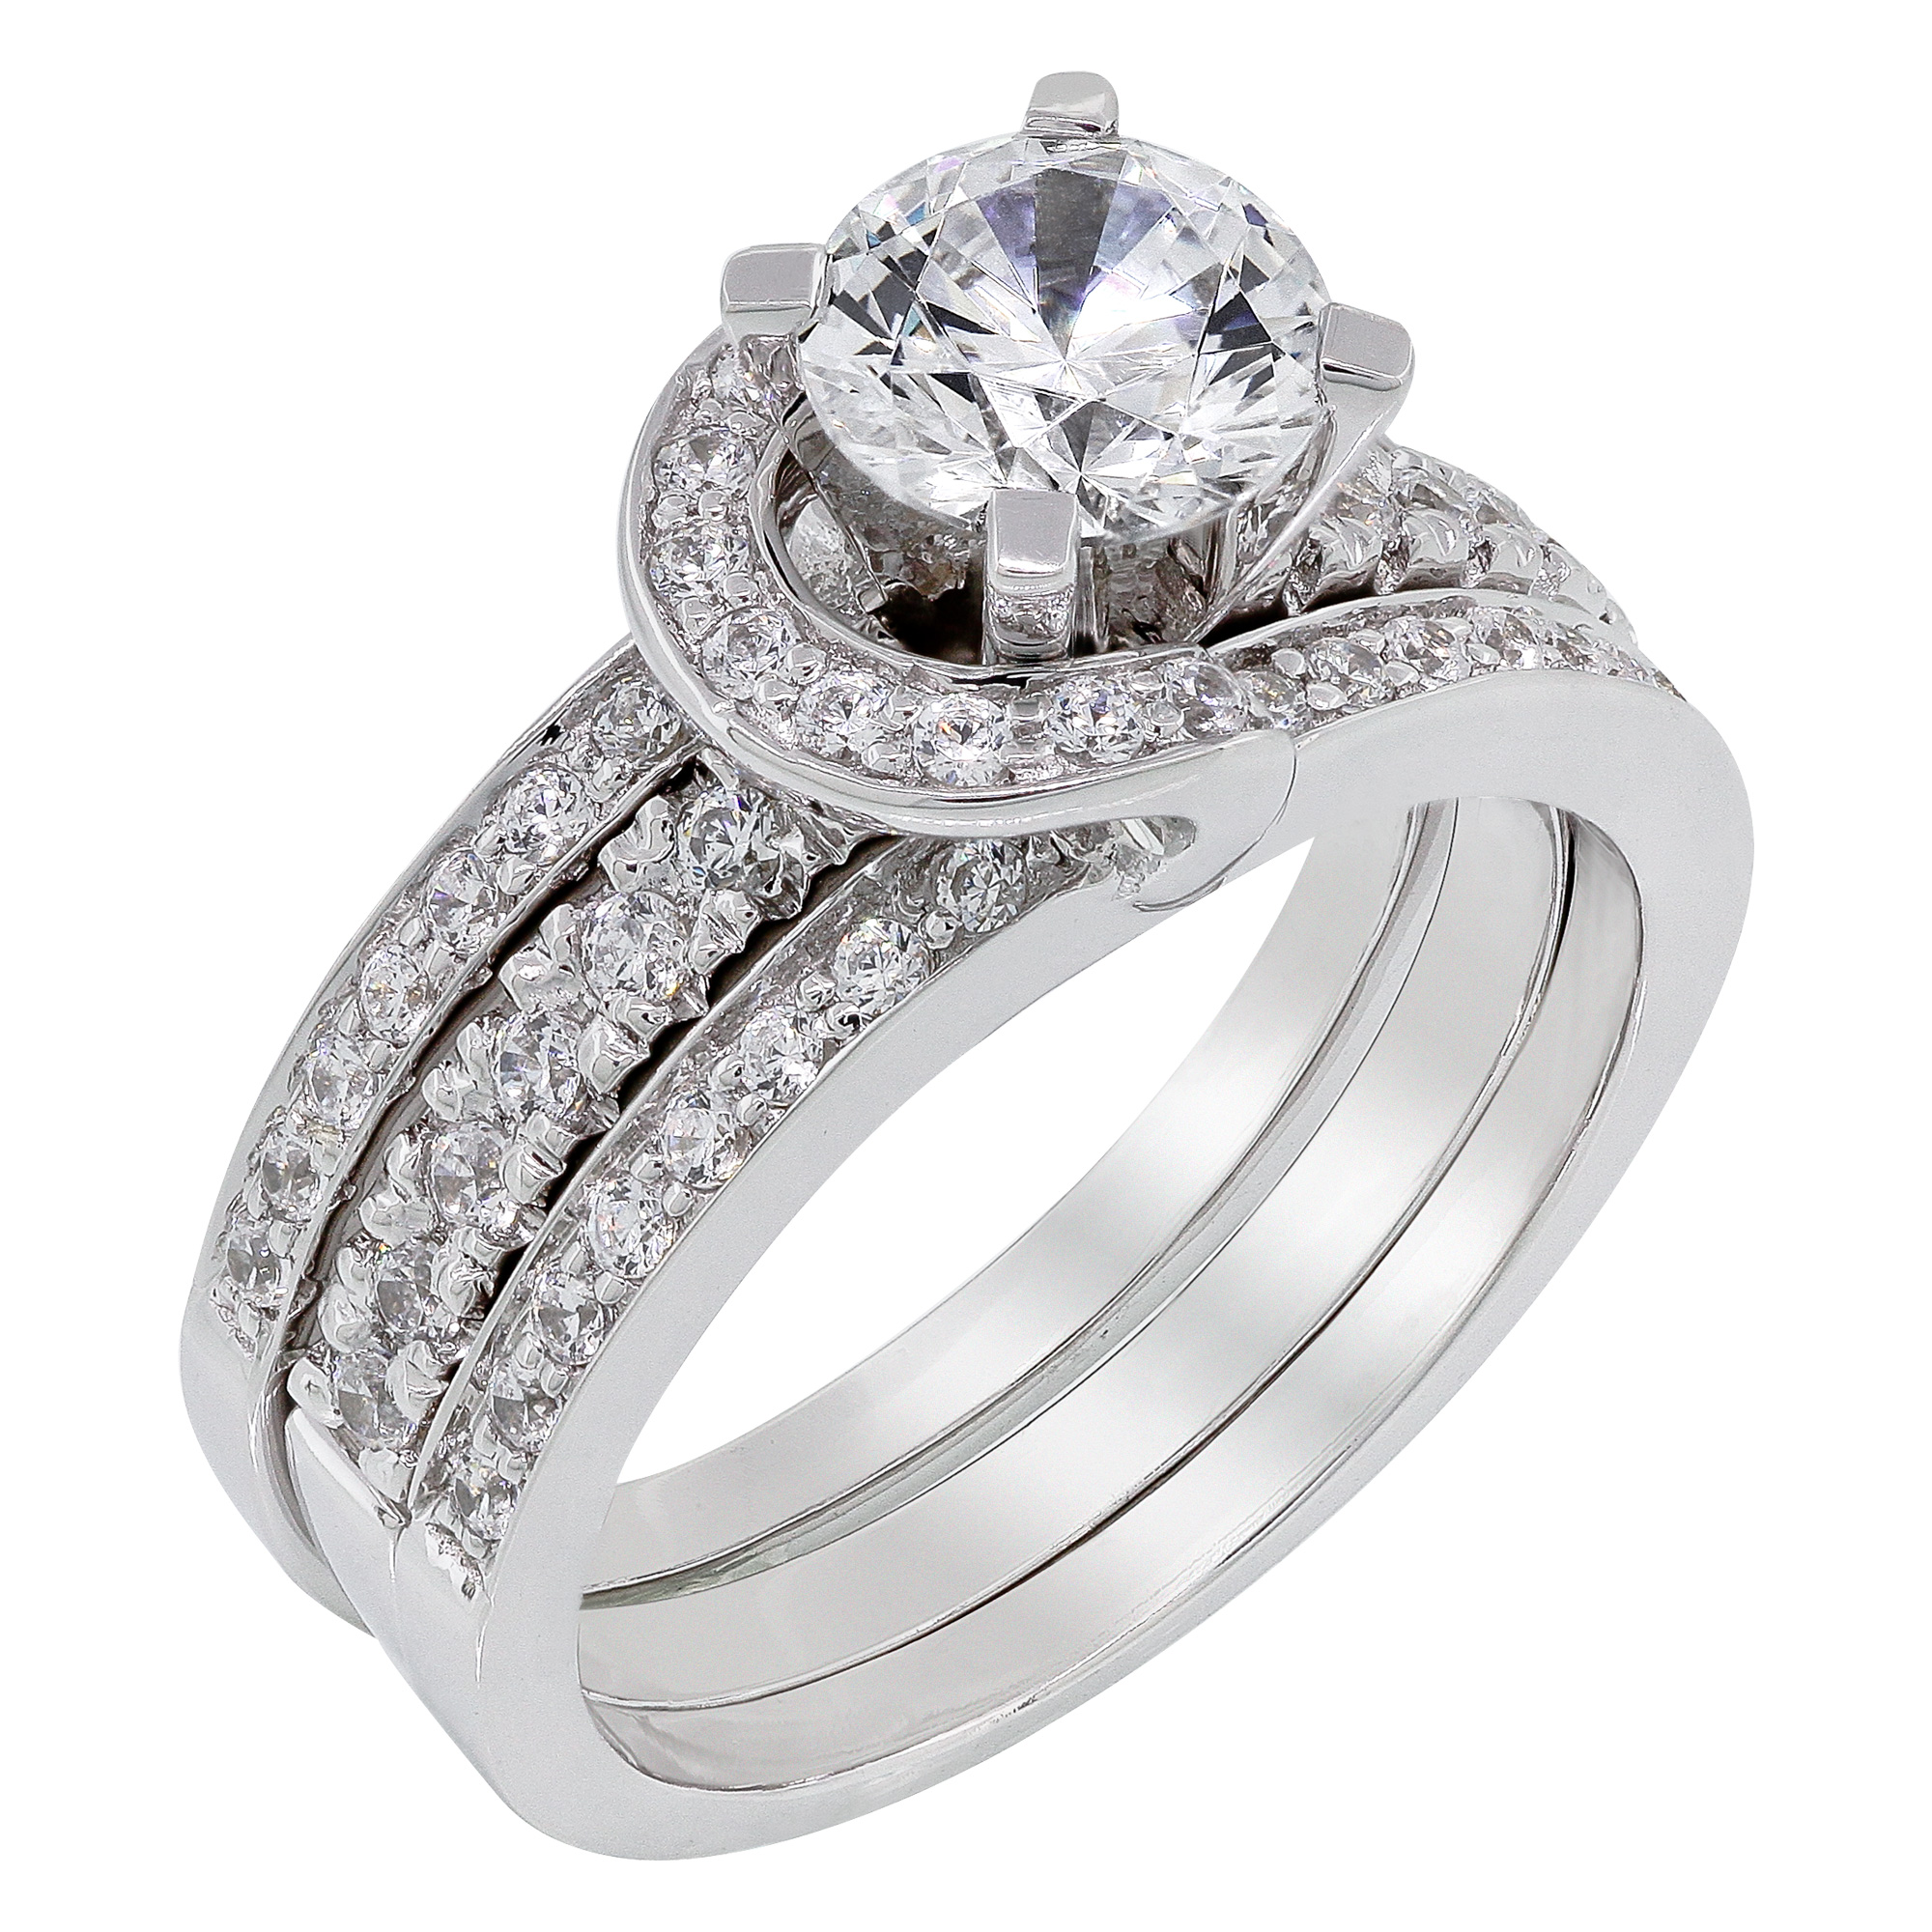 Diamond nexus introduces new engagement ring collection for Dimond wedding ring